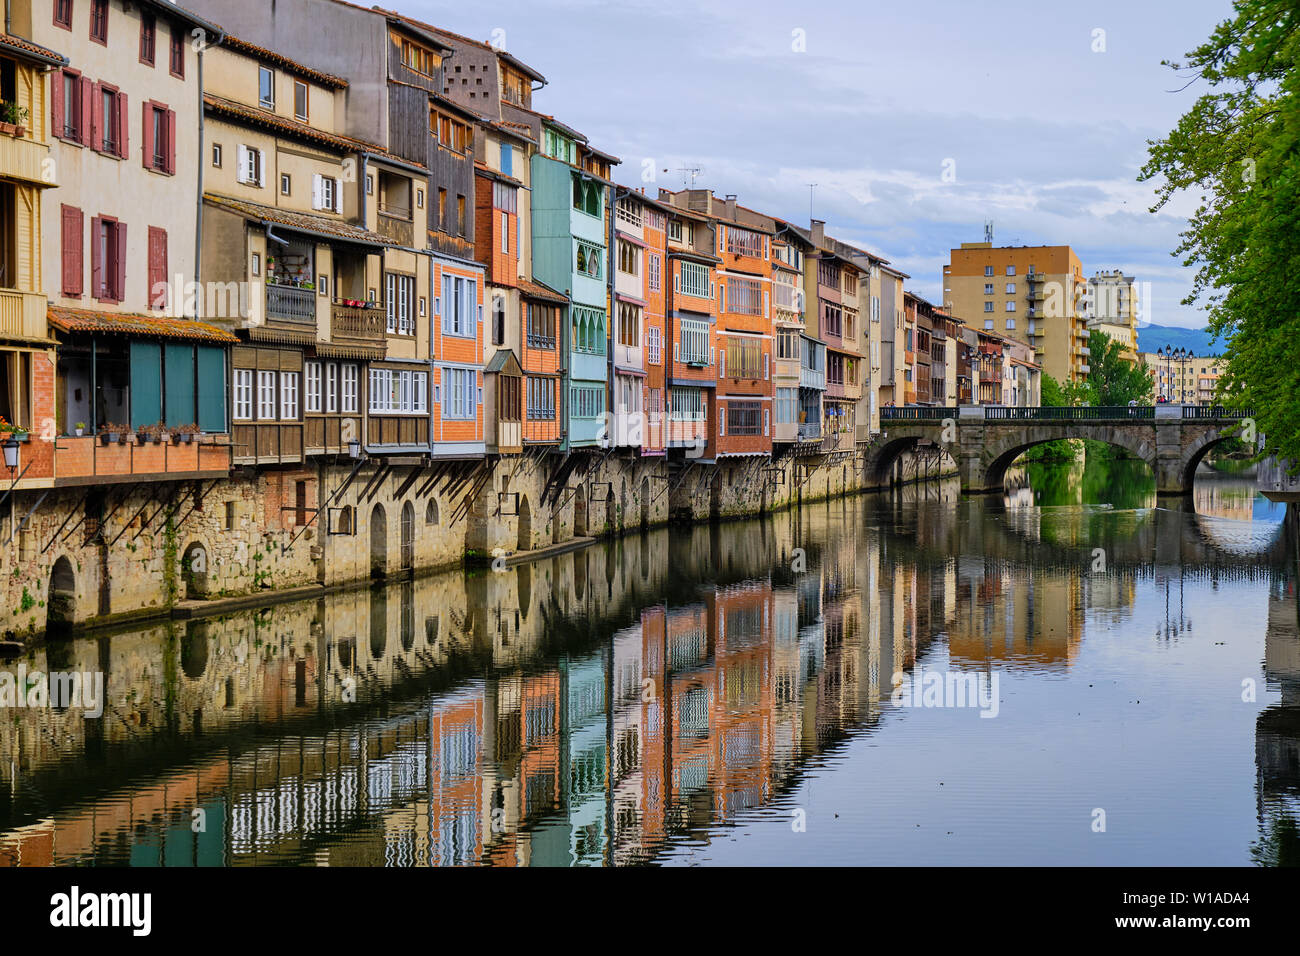 View of the Castres architecture on houses along the Agout river.  Angled view from side of river with house reflection  leading to old bridge. Stock Photo